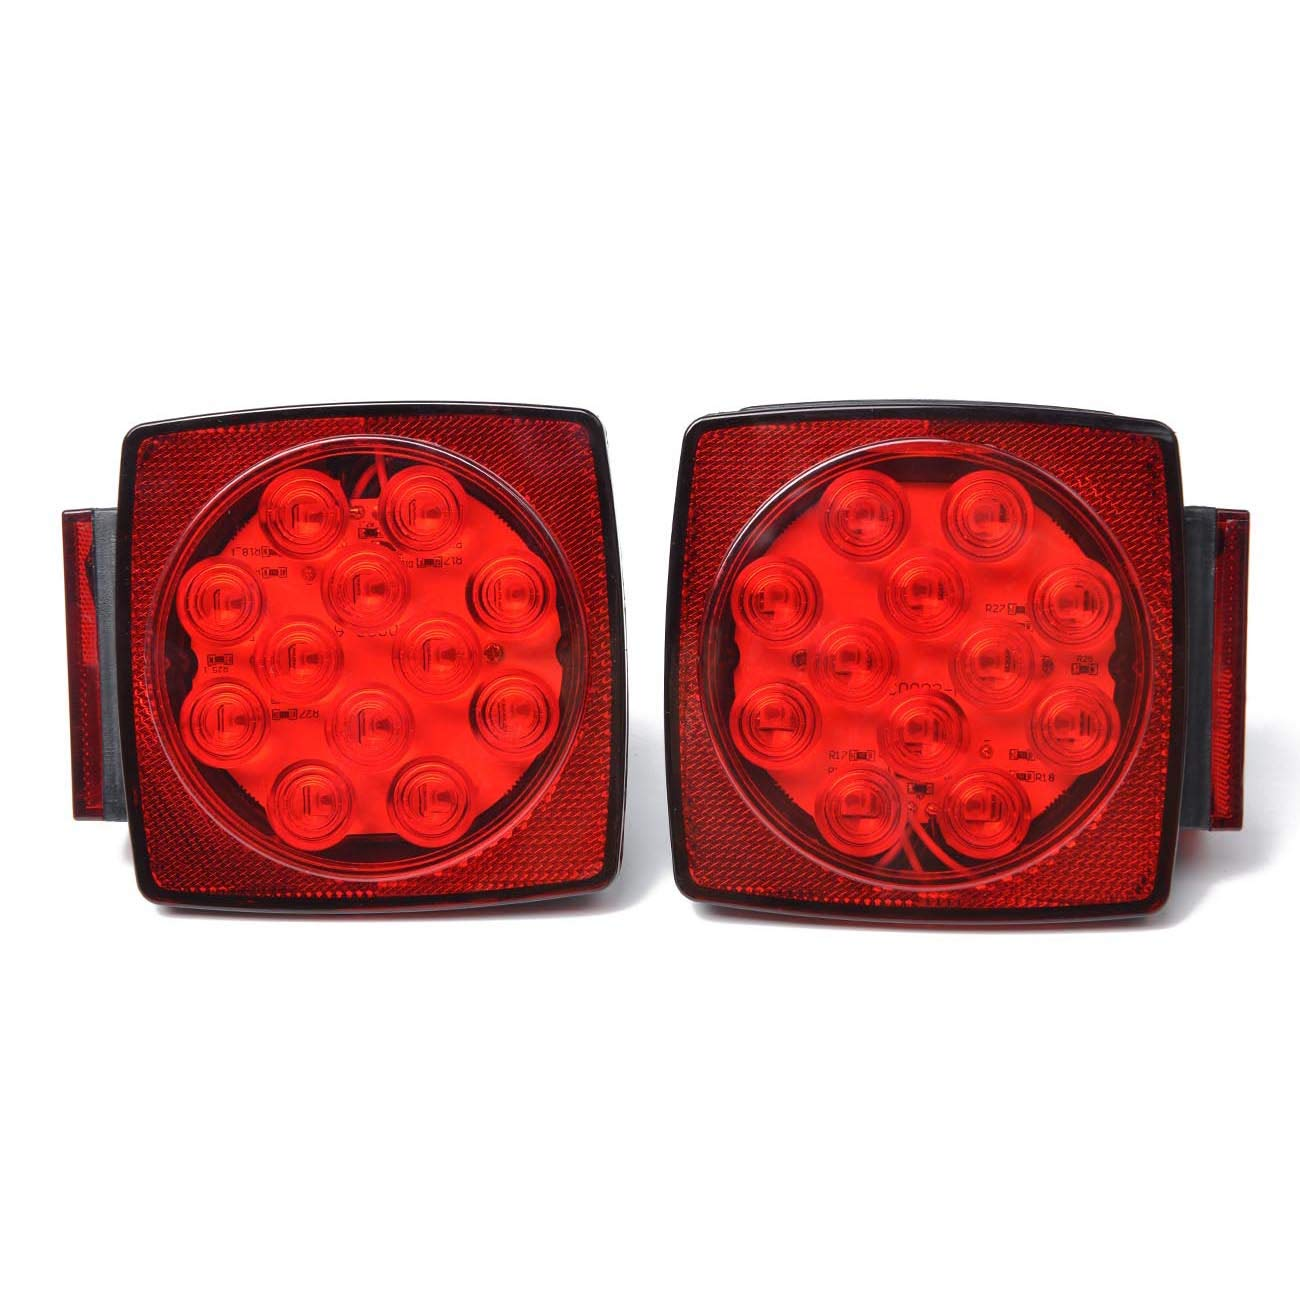 Depo 331-1964L-US2 Ford Crown Victoria Driver Side Replacement Taillight Unit without Bulb 02-00-331-1964R//L-US1R